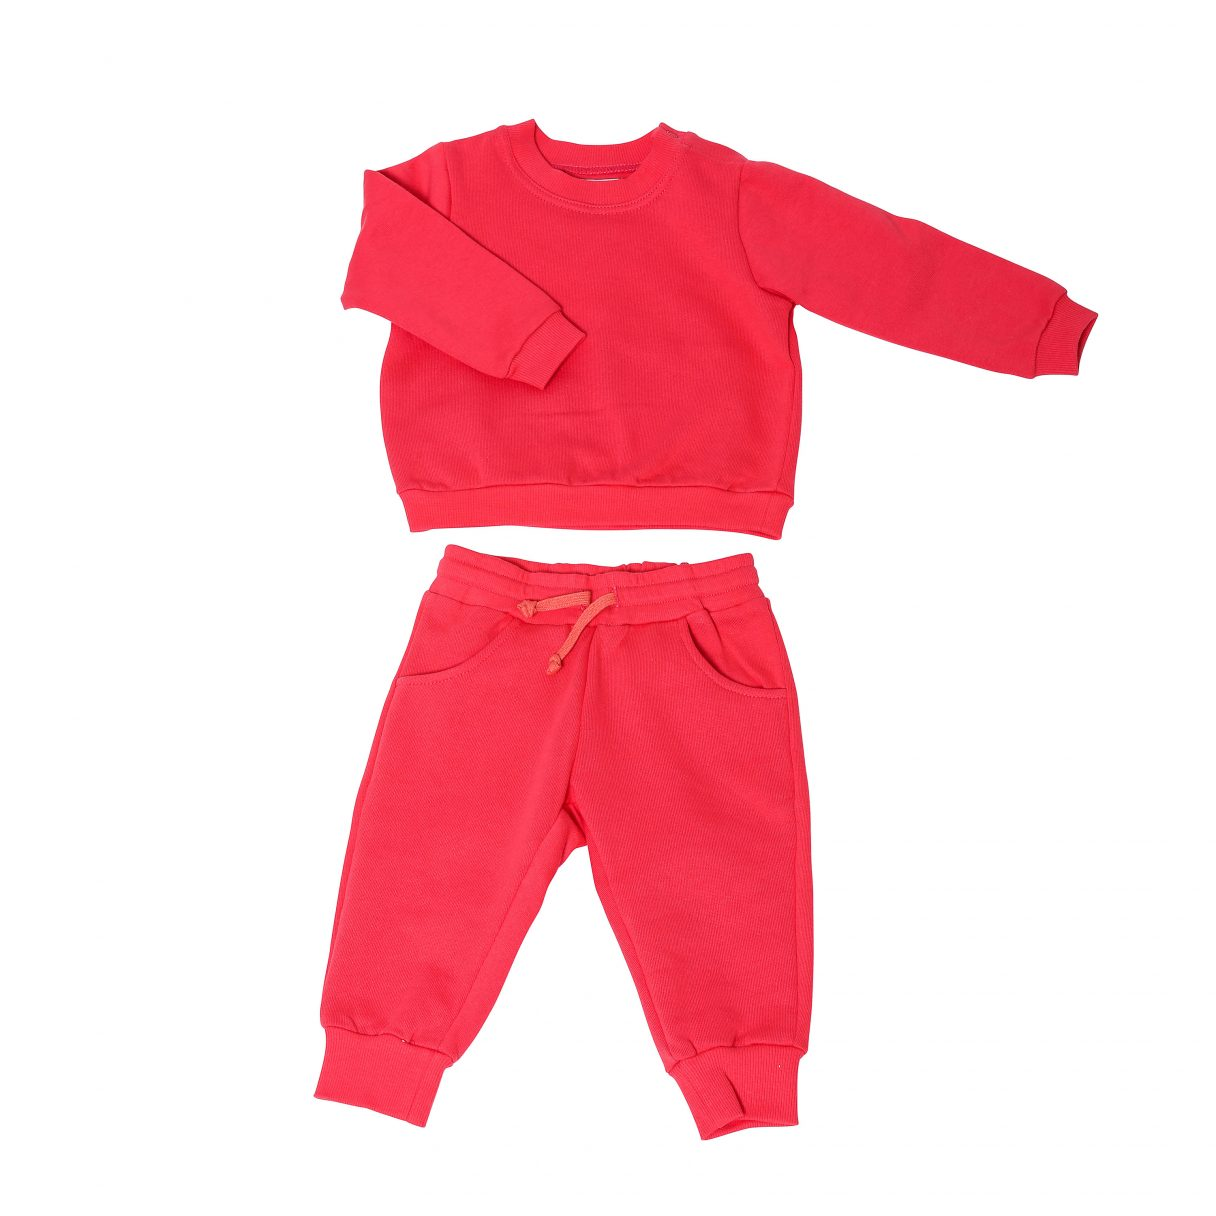 Baby Sweatsuit Organic Cotton Red 1